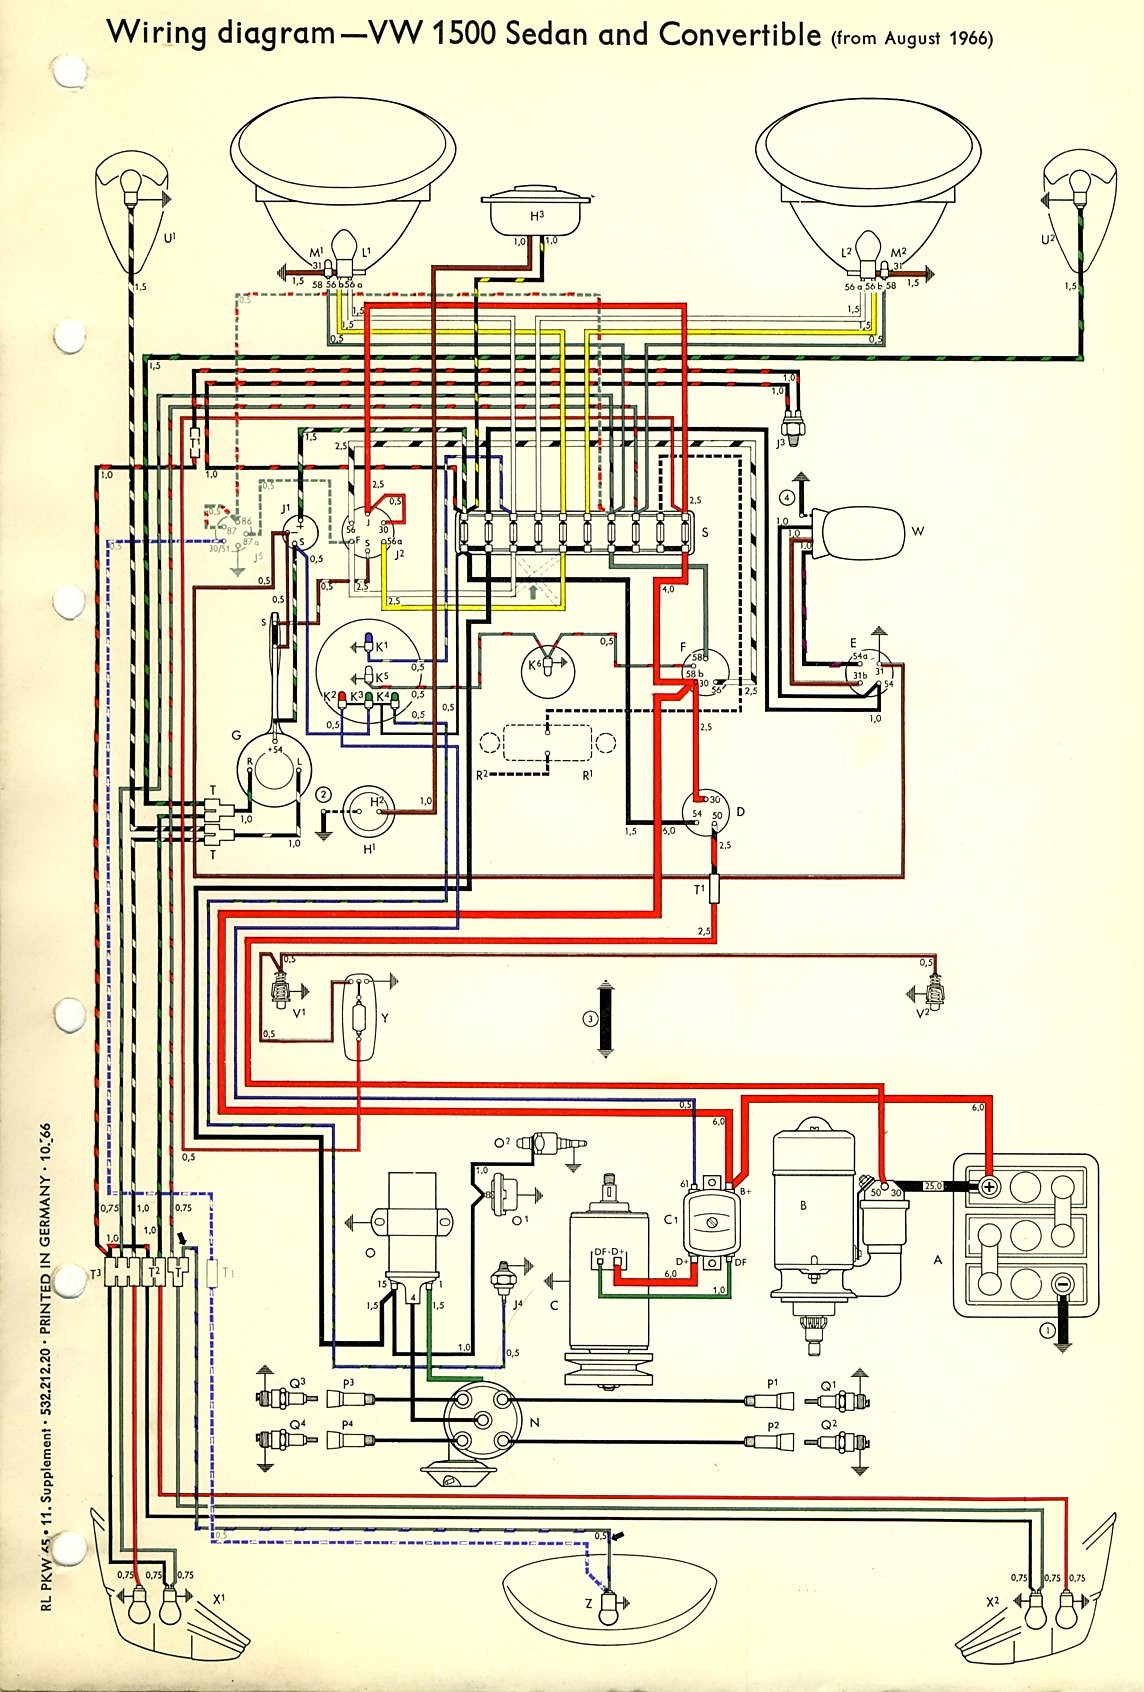 71 charger wiring diagram change your idea wiring diagram 1971 dodge wiring diagram wiring library rh 7 insidestralsund de 2012 dodge charger wiring diagram yamaha